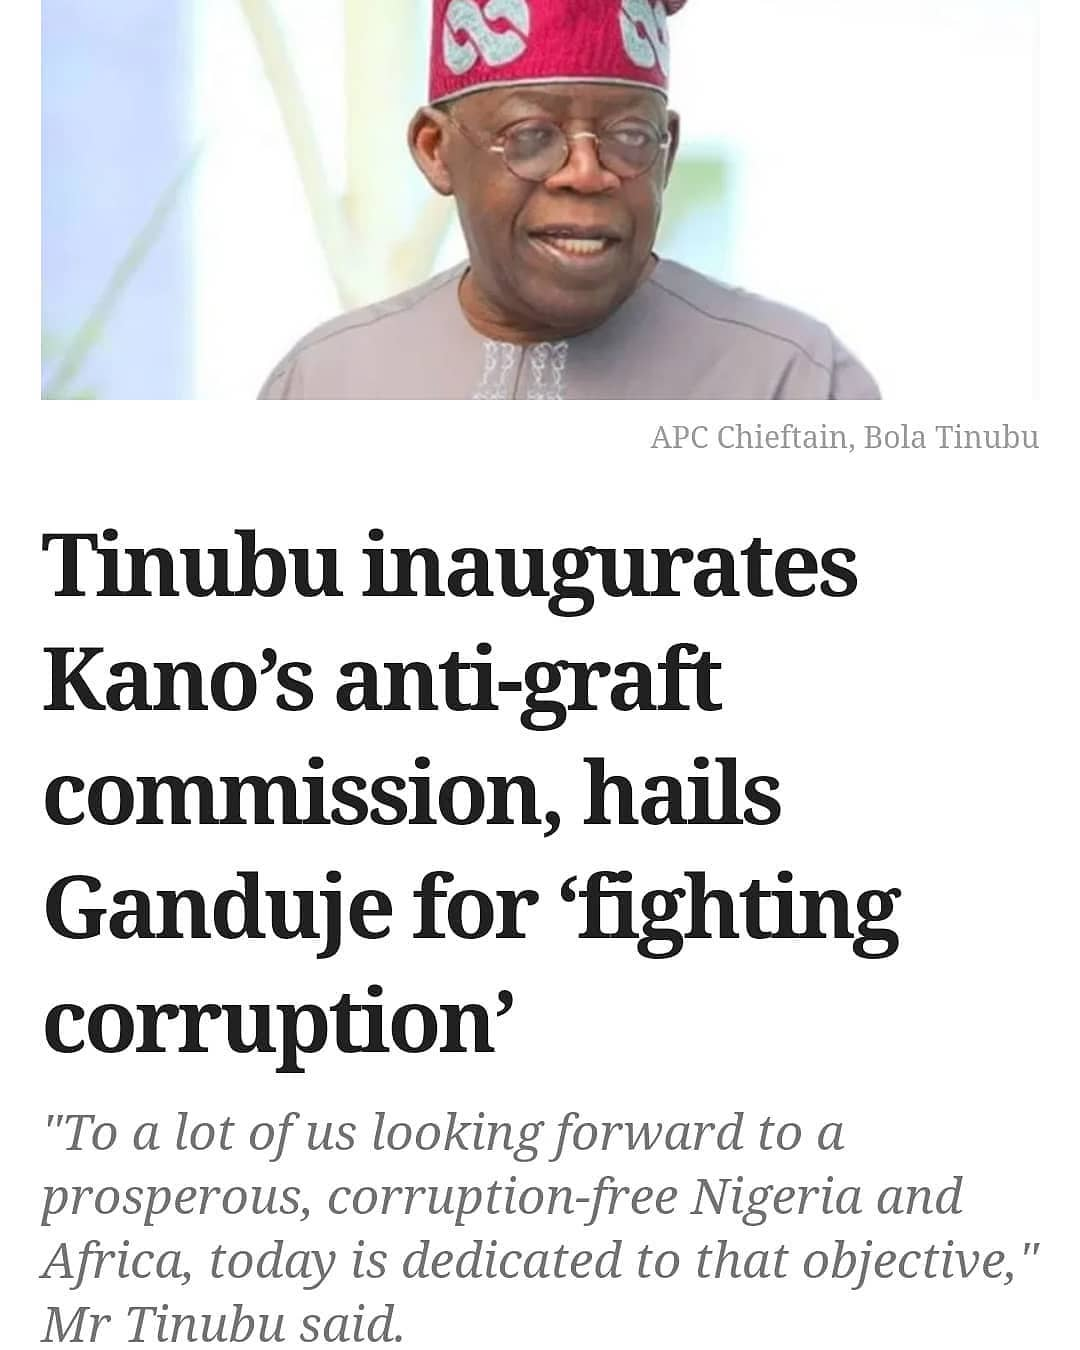 """The All Progressives Congress (APC) National Leader, Bola Tinubu, has lauded Governor Abdullahi Ganduje of Kano State for strengthening anti-corruption institutions.  Mr Tinubu gave the commendation on Sunday in Kano while inaugurating the Office of Kano State Public Complaints and Anti-Corruption Commission.  Despite Mr Ganduje being caught in a video collecting bribe years ago, the APC leader praised him for """"his efforts in fighting corruption"""".  Mr Ganduje has consistently denied this.  """"This is a welcome development indeed and we salute the governor for this encouraging effort.  """"In ensuring Nigeria becomes a member of a committed international community that frees us from the burden of corruption this and similar edifices could play an important role in that.  """"To a lot of us looking forward to a prosperous, corruption-free Nigeria and Africa today is dedicated to that objective,"""" he pointed out.  In his remark, Mr Ganduje said that at the time his administration took over, the institution had achieved little.  He said that he appointed a very vibrant human rights activist, Muhuyi Rmin-Gado, to chair the agency.    """"When he was appointed as the chairman, we made it very clear that there would be no interference in the activities of the agency and up till now we have not interfered in any of its activities,"""" the governor added.  He said that his administration would continue to support the anti-graft body for effective and efficient operations.  Mr Tinubu also inspected some other projects being executed by the state government."""